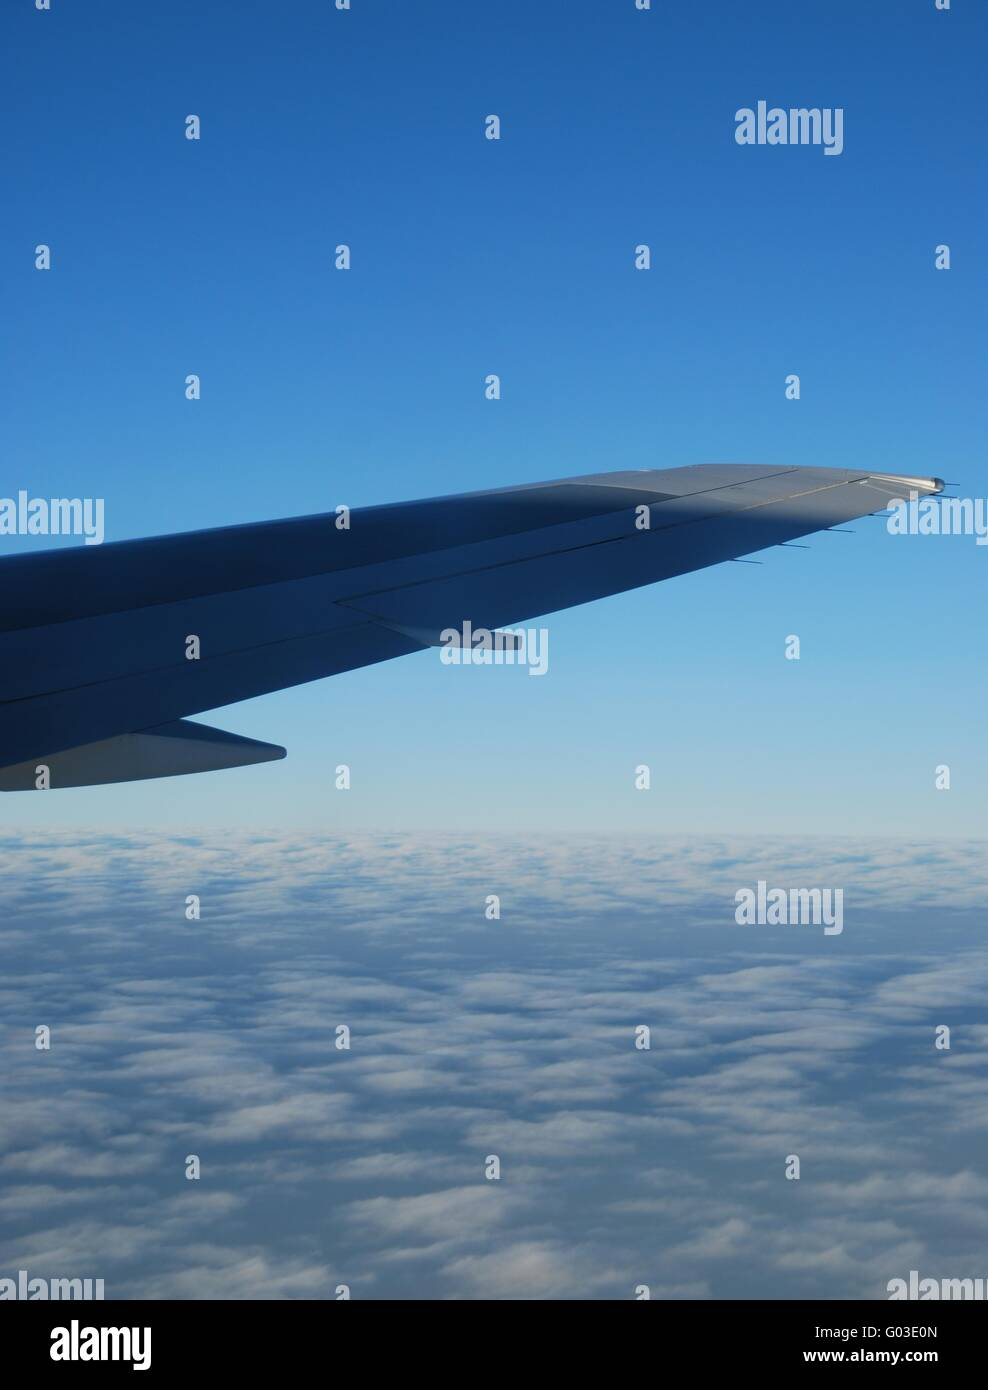 photo of a airplane wing and clouscape scene - Stock Image